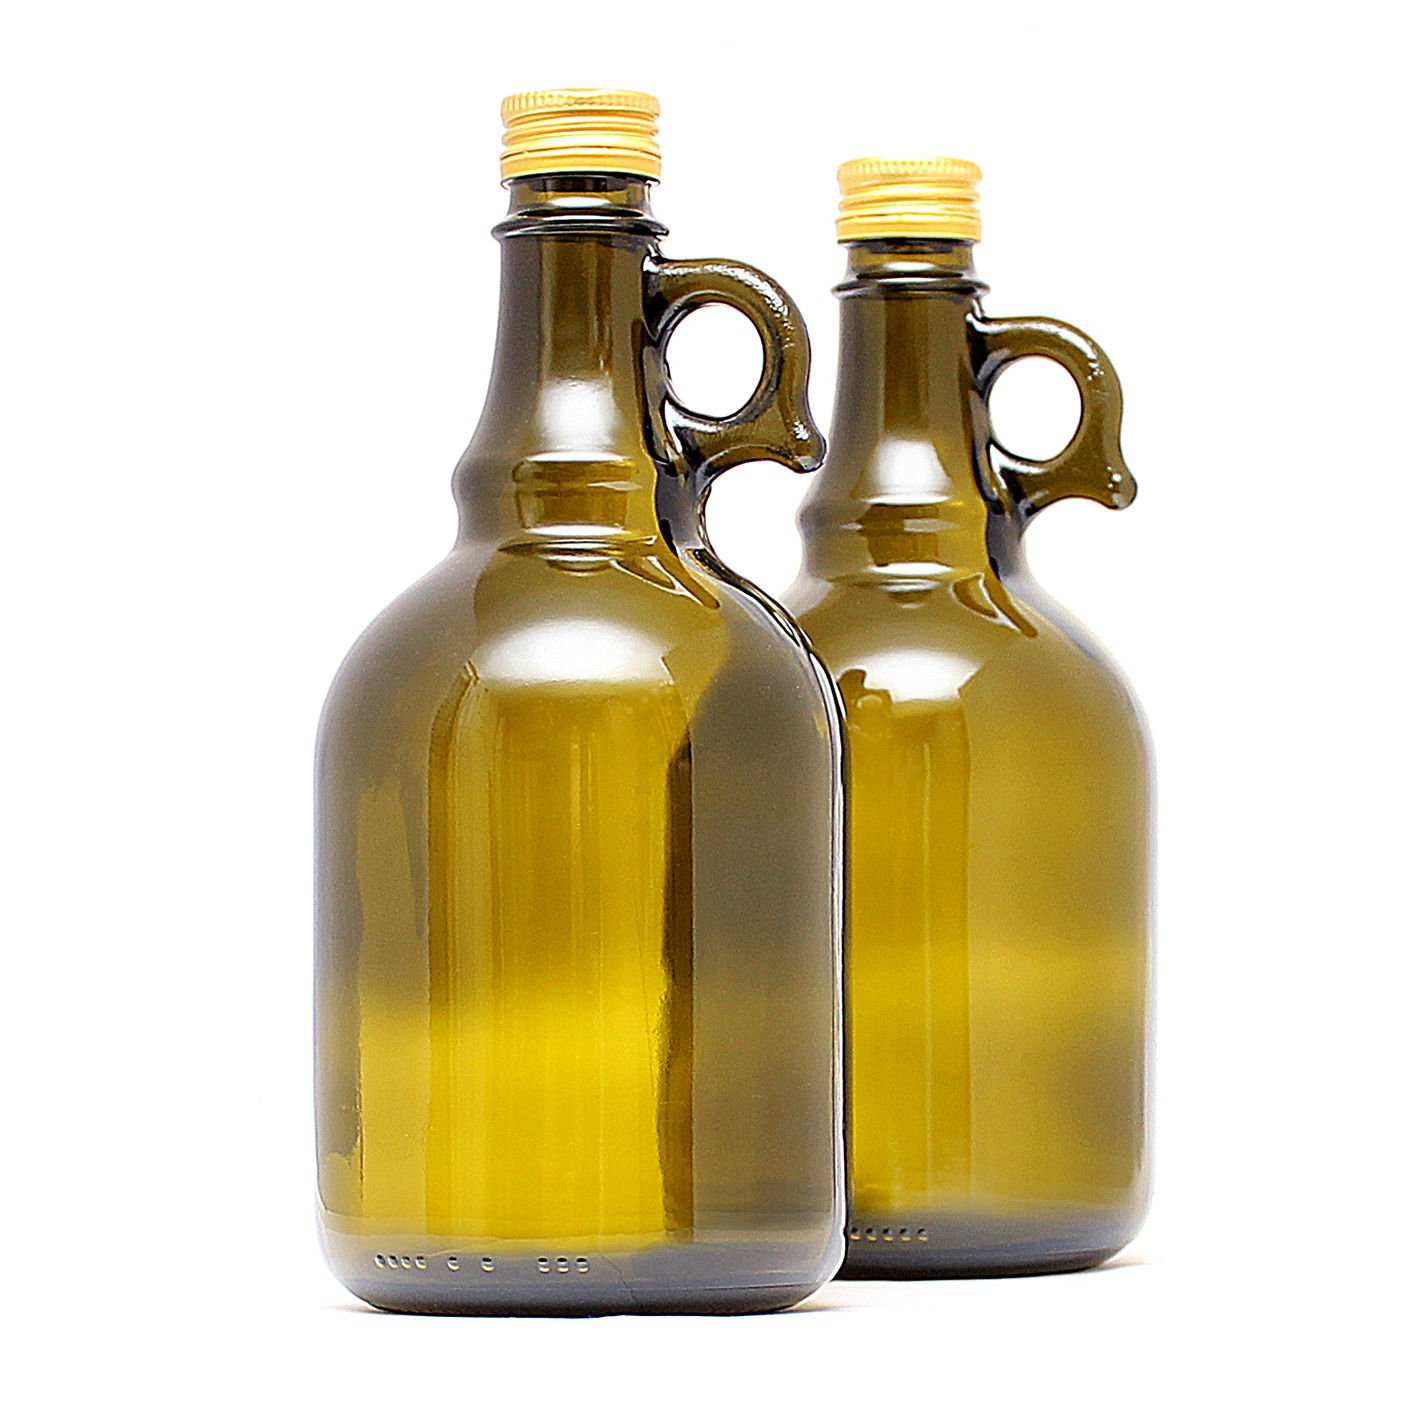 Biowin Olive Glass Bottle GALLONE - 1000ml, 500ml (x1,2,4) - Wine, Beer, Cider -Braided (1000ml, pack of 1 bottle)